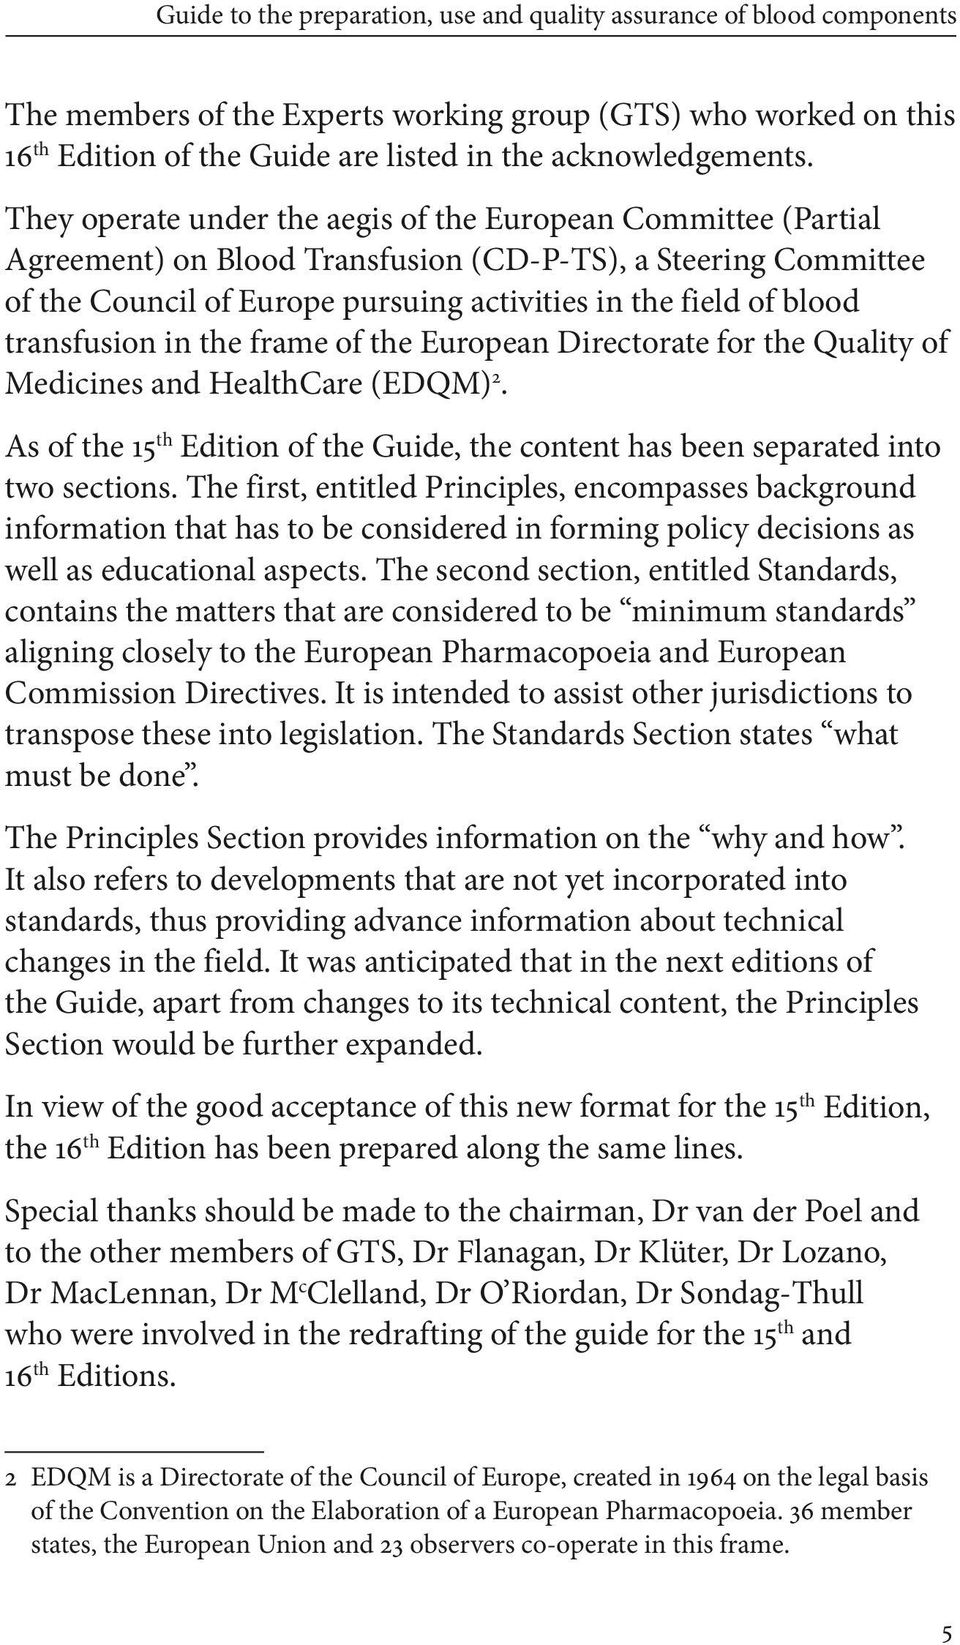 transfusion in the frame of the European Directorate for the Quality of Medicines and HealthCare (EDQM)2. As of the 15th Edition of the Guide, the content has been separated into two sections.